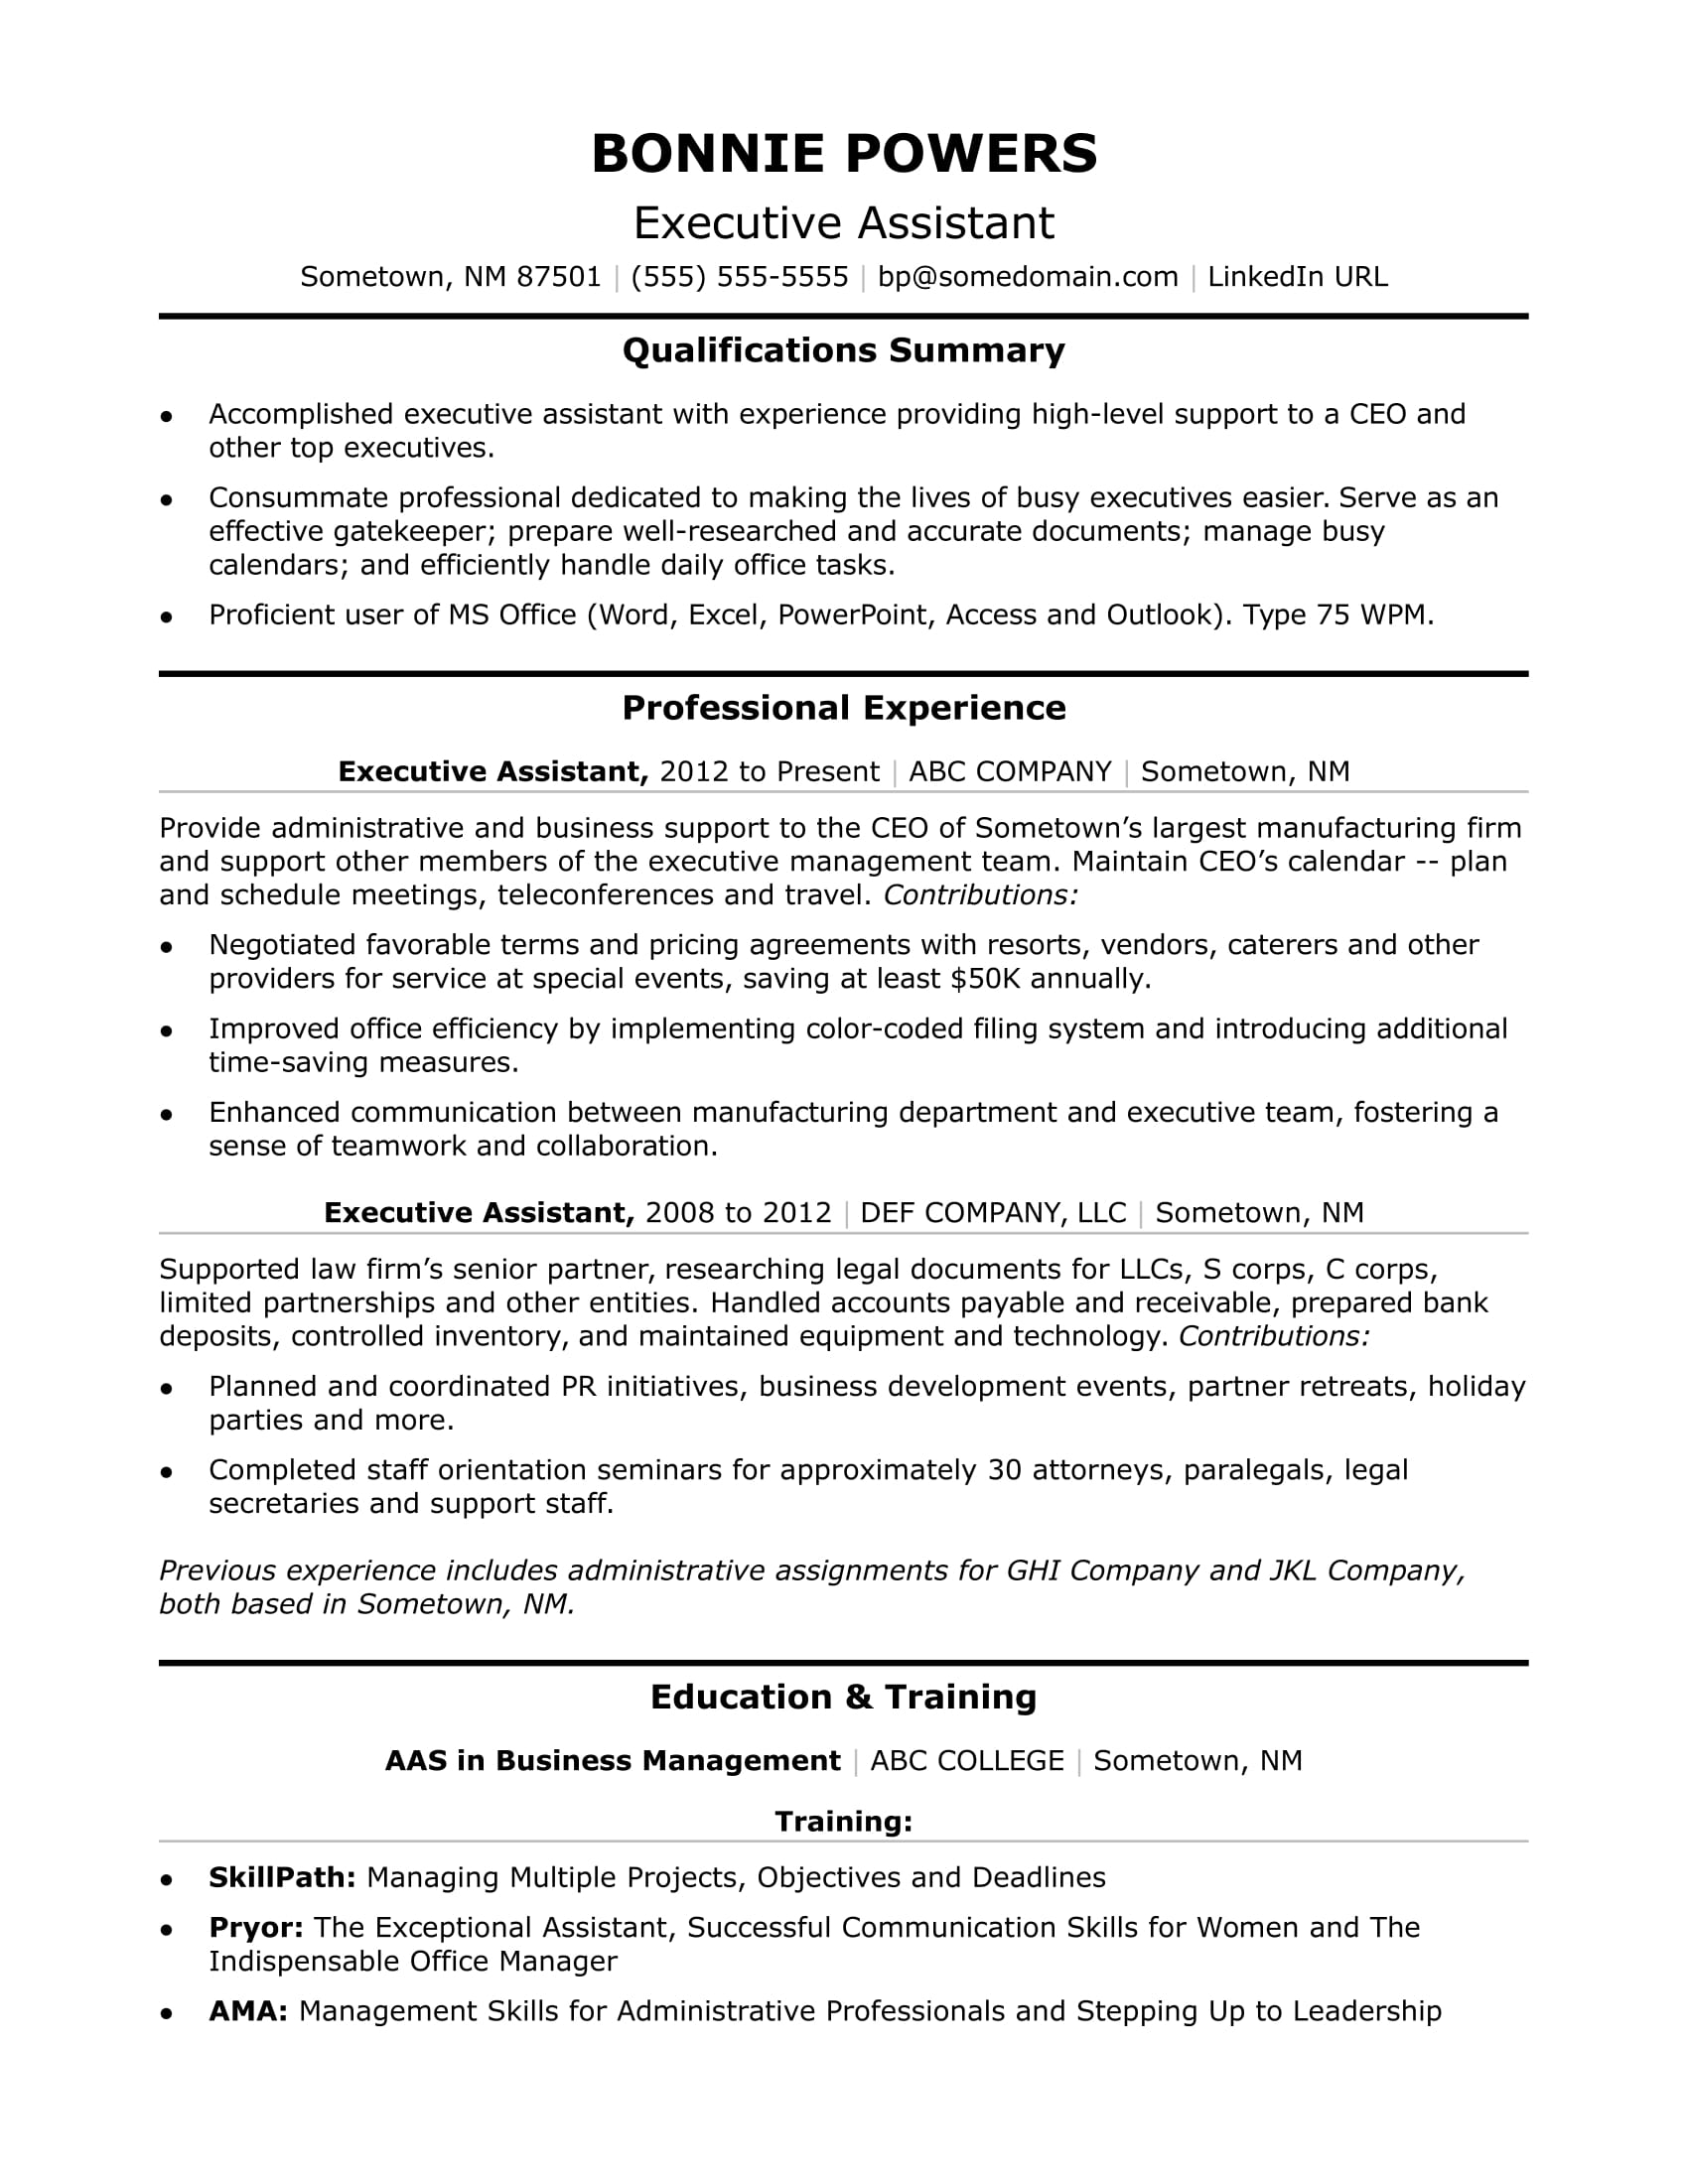 executive administrative assistant resume sample monster summary internet experience Resume Administrative Assistant Resume Summary